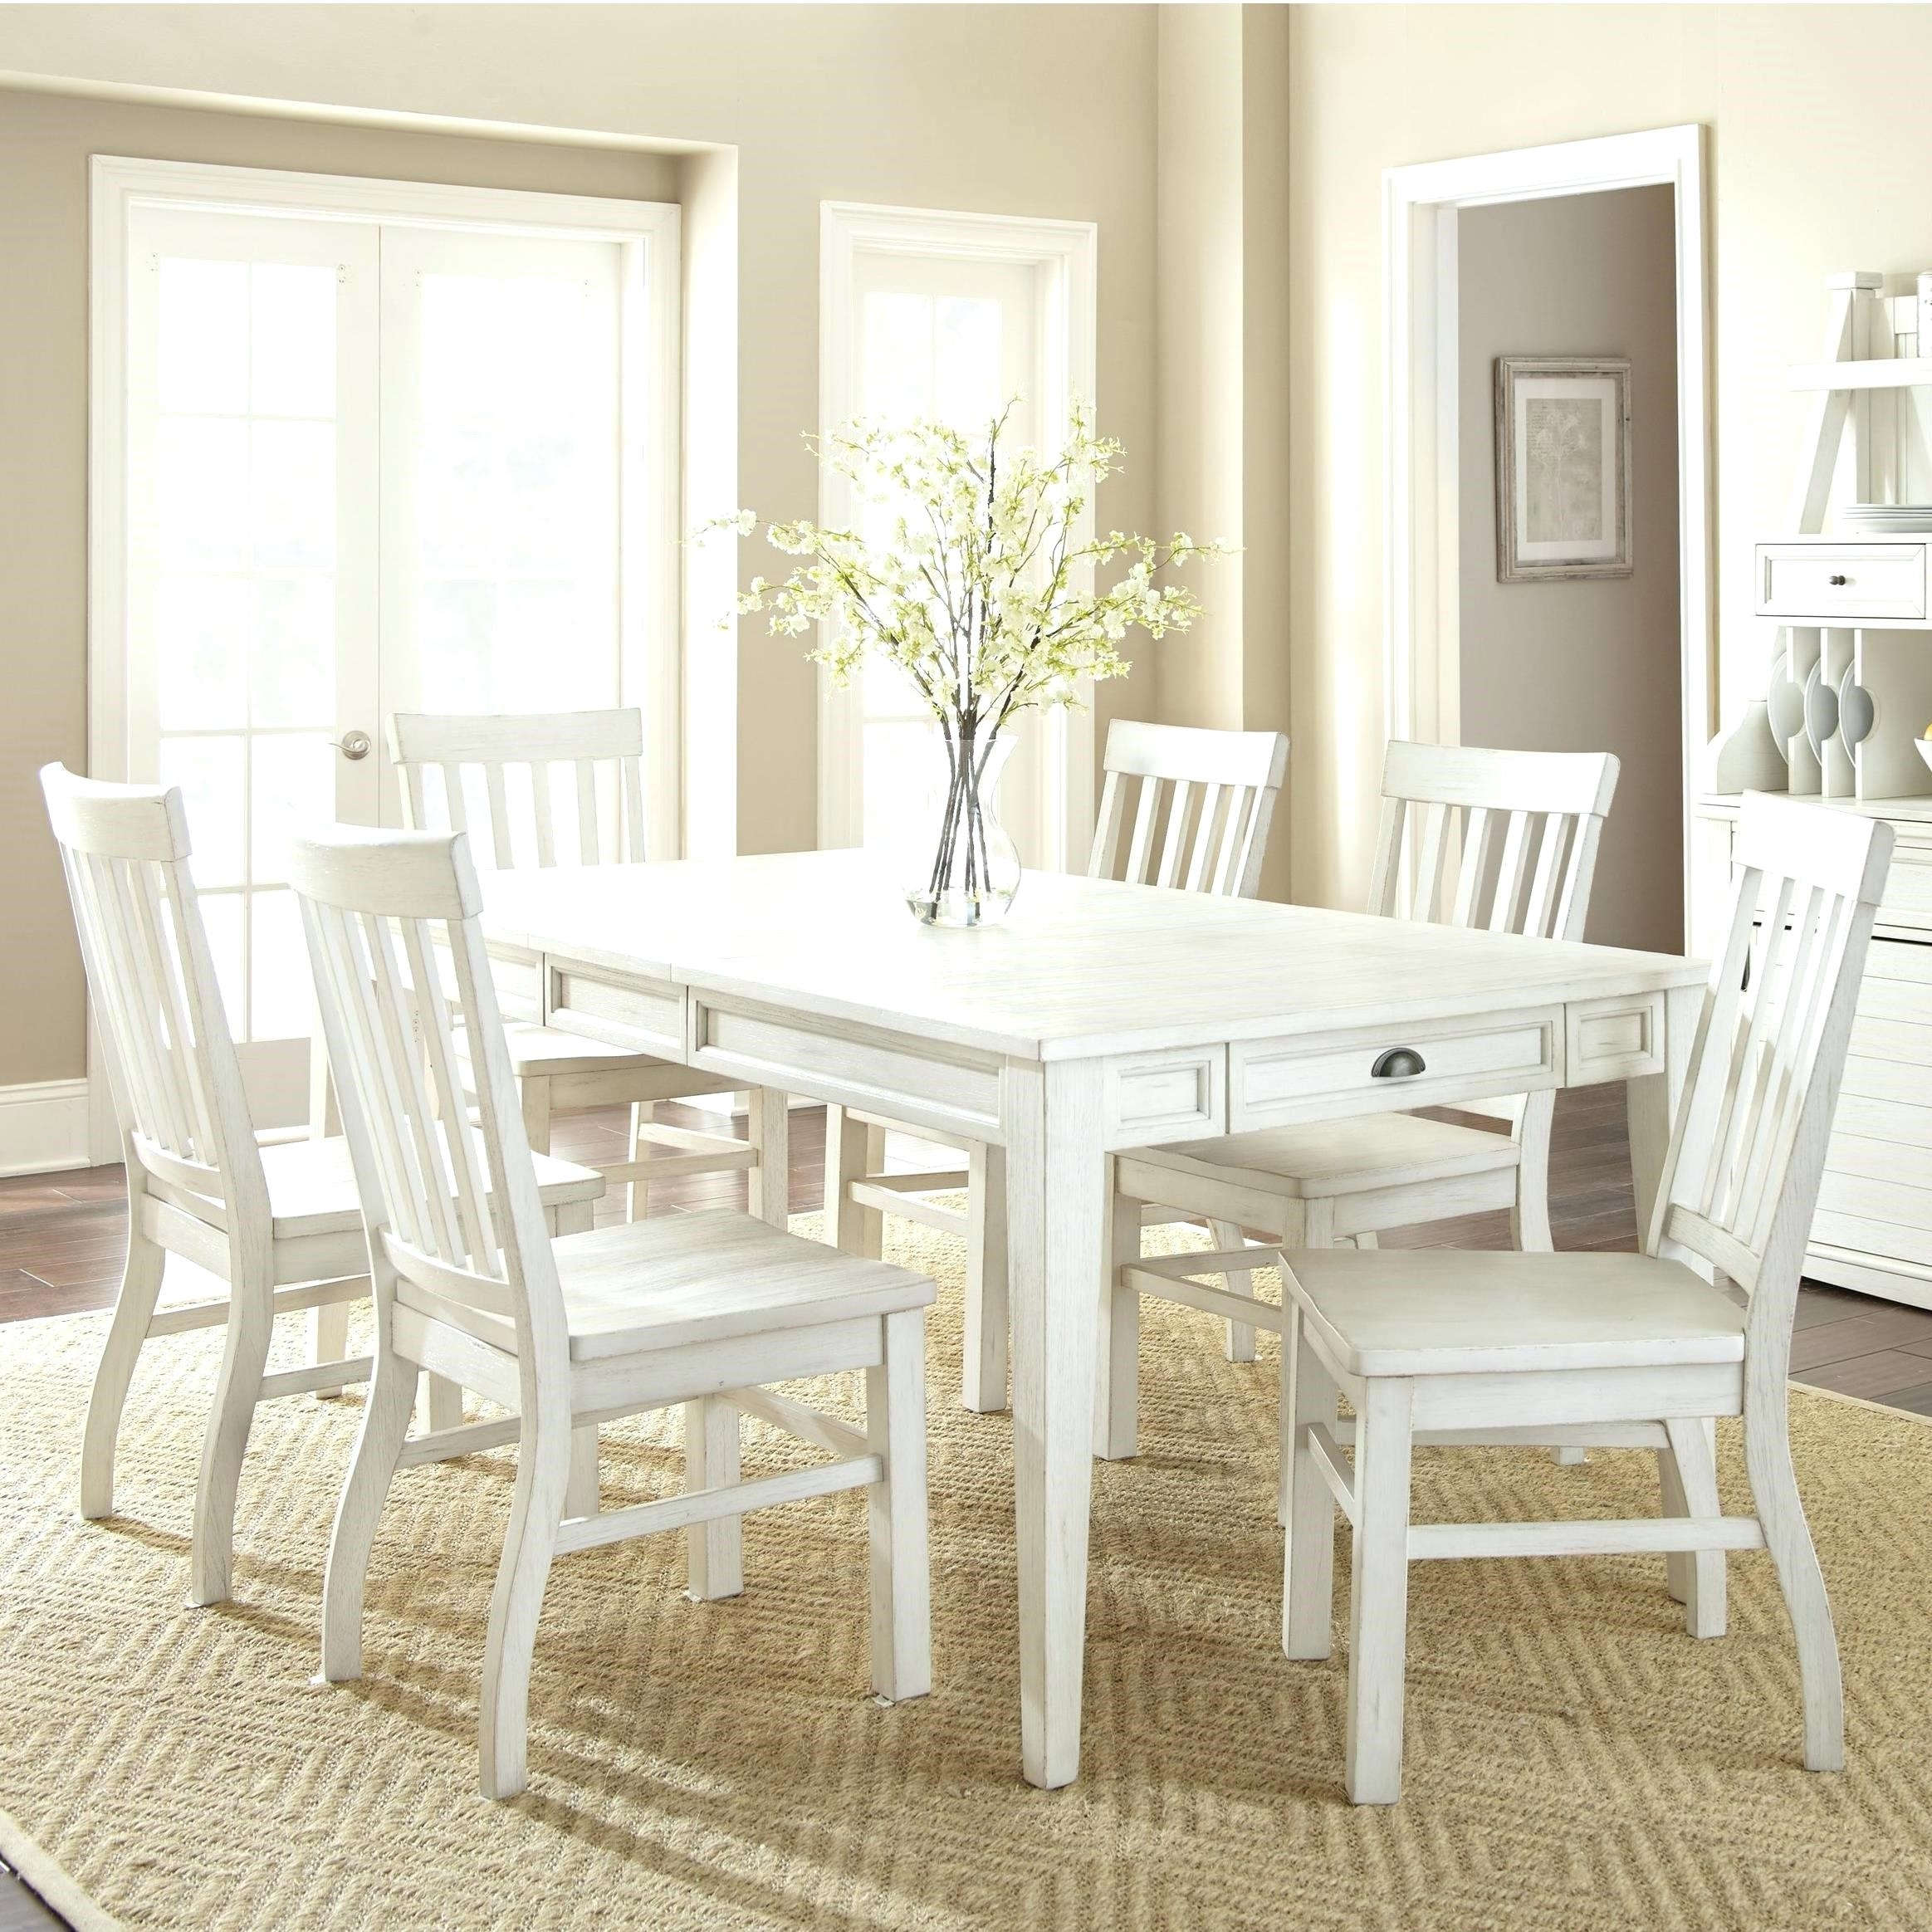 7 Piece Dining Set Under 400 Round Dining Room Set For 4 White Round Inside Most Recently Released Partridge 7 Piece Dining Sets (Photo 12 of 20)